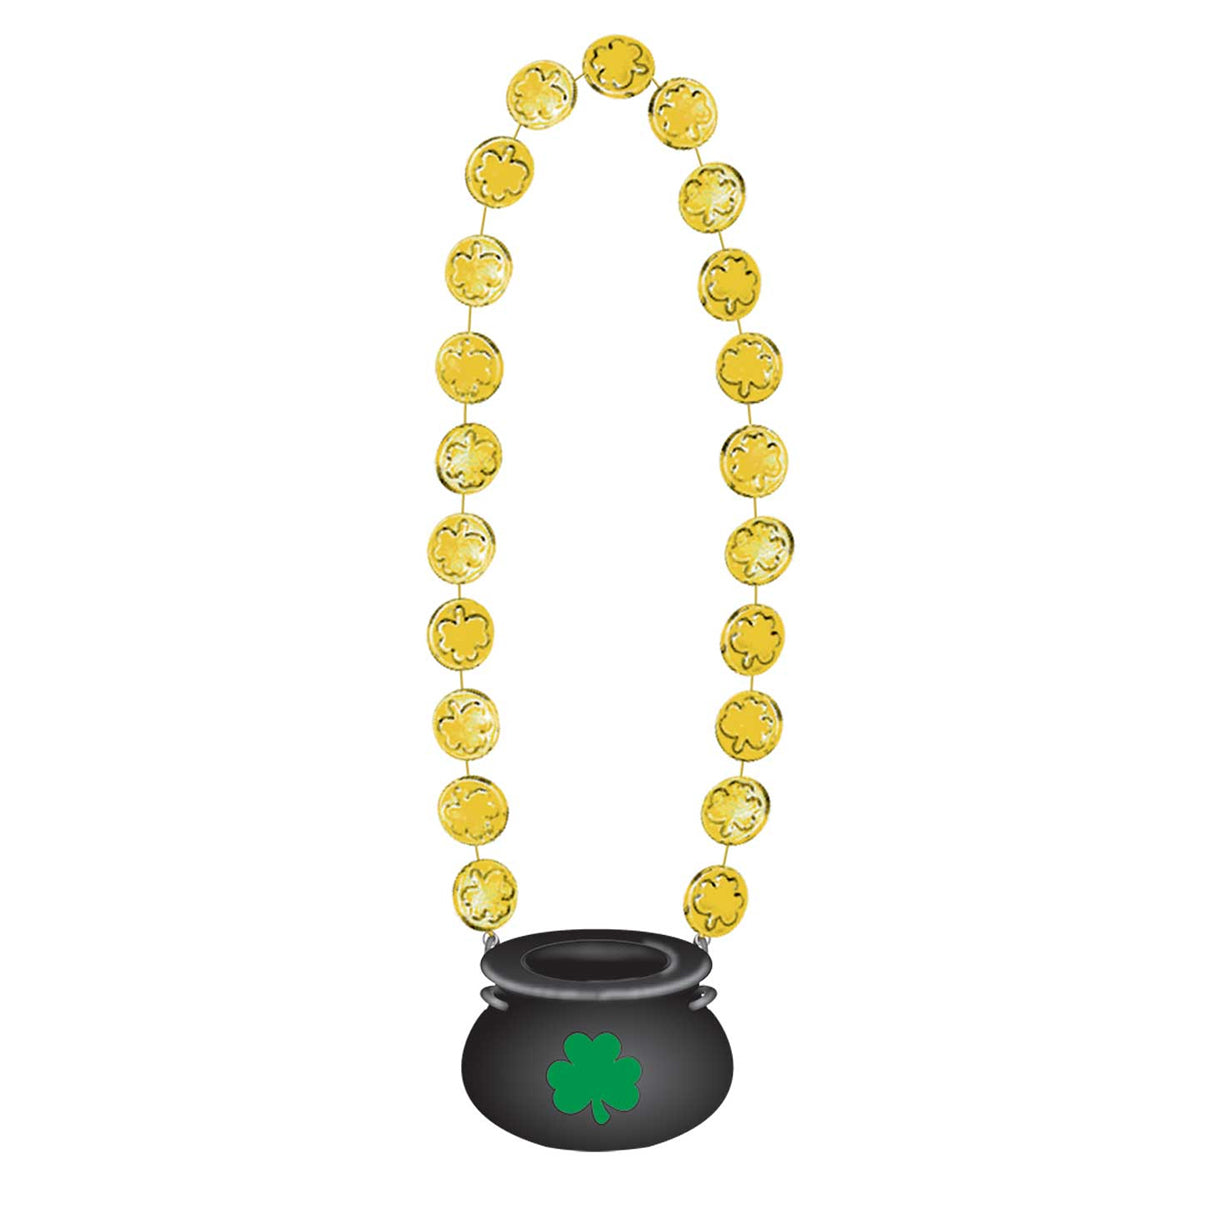 St. Patrick's Day Gold Coin Necklace - 45cm